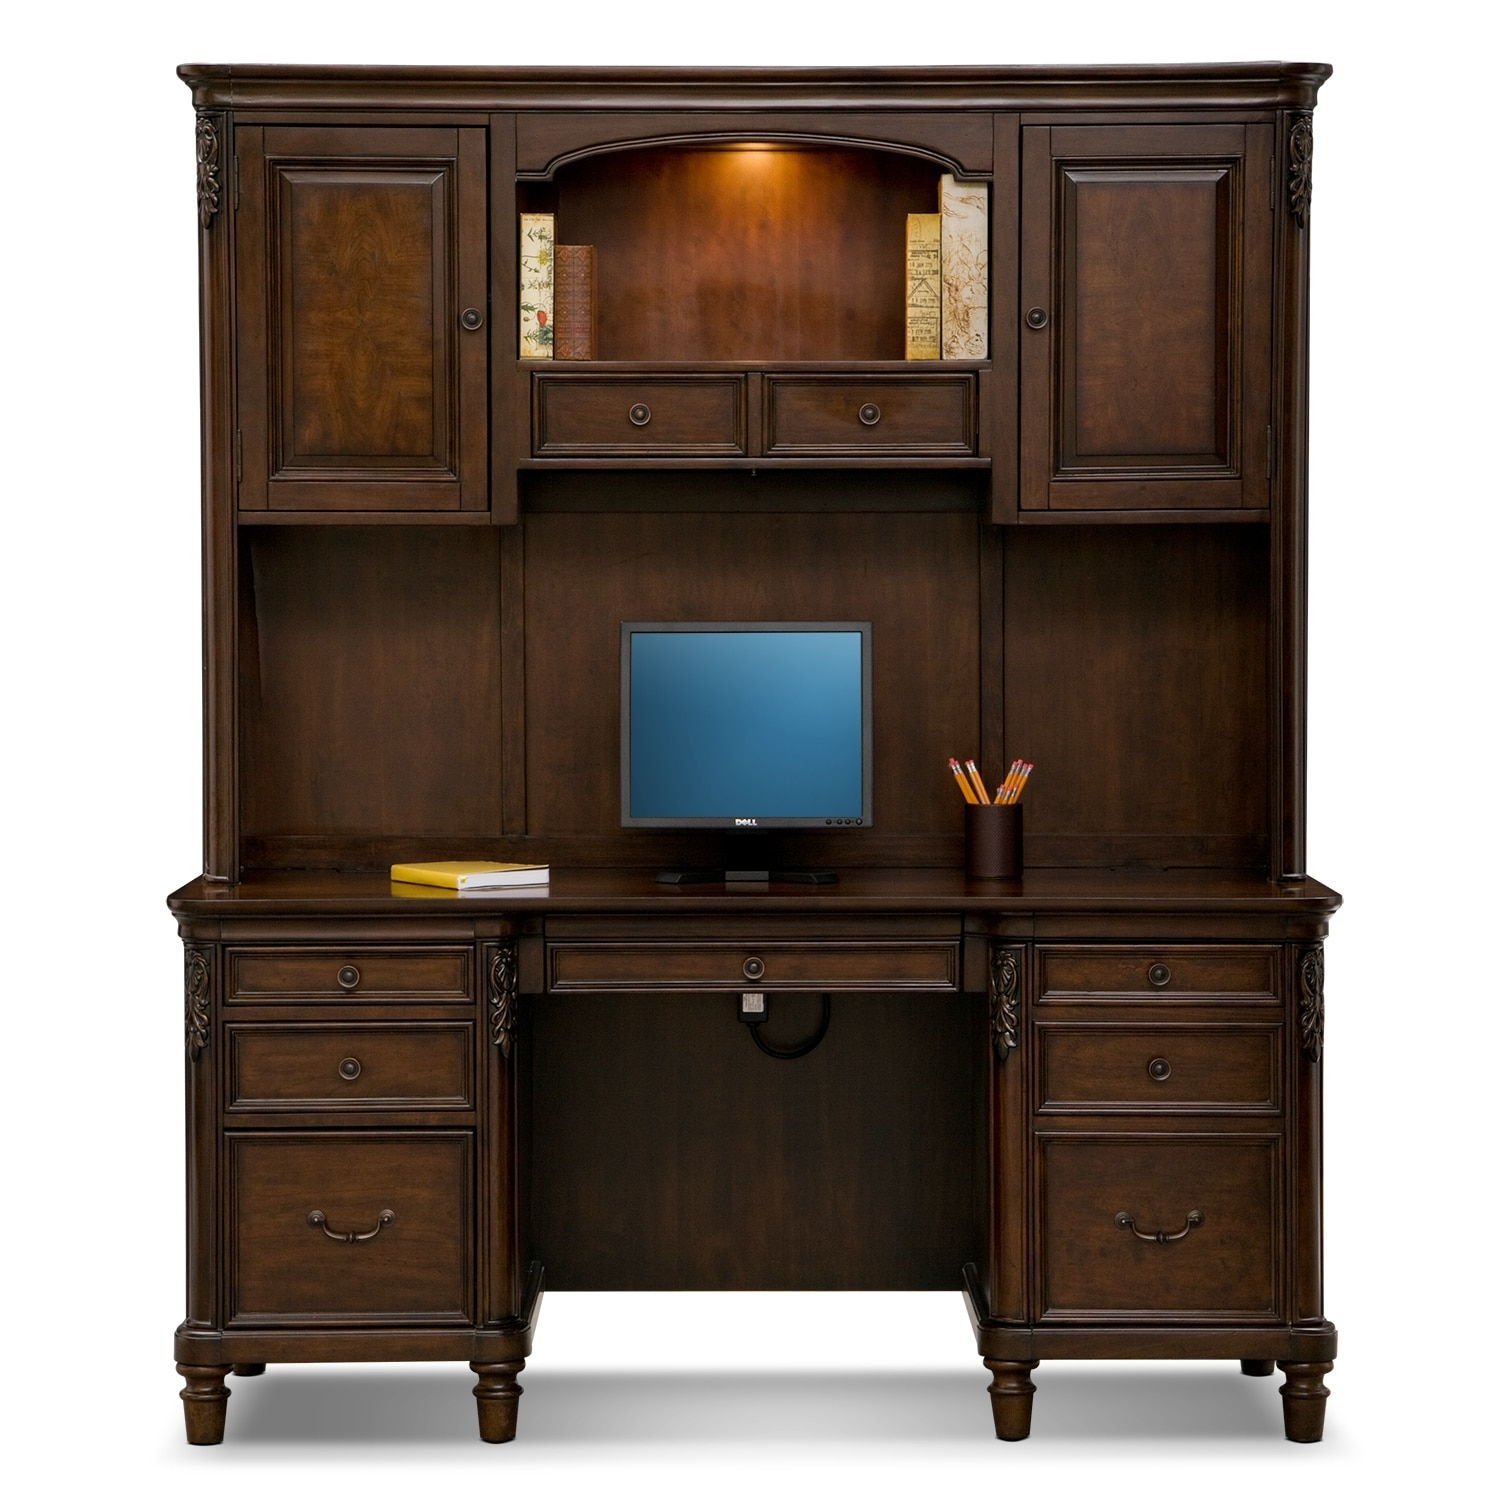 Ashland Credenza Desk With Hutch  Cherry  American. Outdoor Table Runner. Kitchenette Tables. Marvel Refrigerator Drawers Reviews. Cheap Computer Desks For Home. White Dining Room Tables. Build A Desk With Drawers. Black Makeup Desk. Computer Desks With Storage